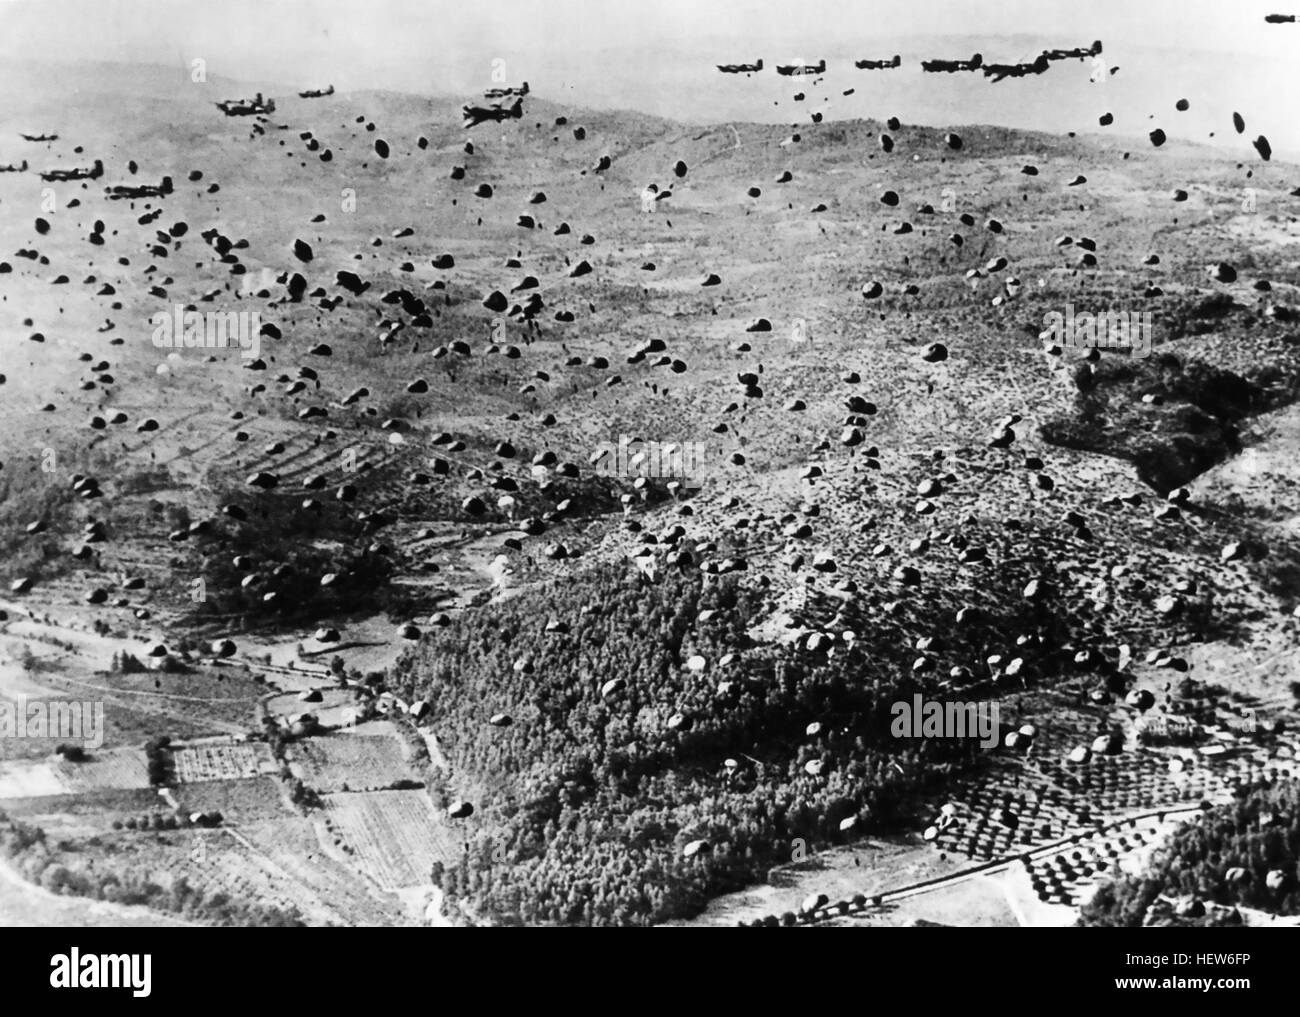 OPERATION DRAGOON 15 August 1944. Paratroopers from the  Ist Airborne Task Force dropping from Dakotas on one of - Stock Image